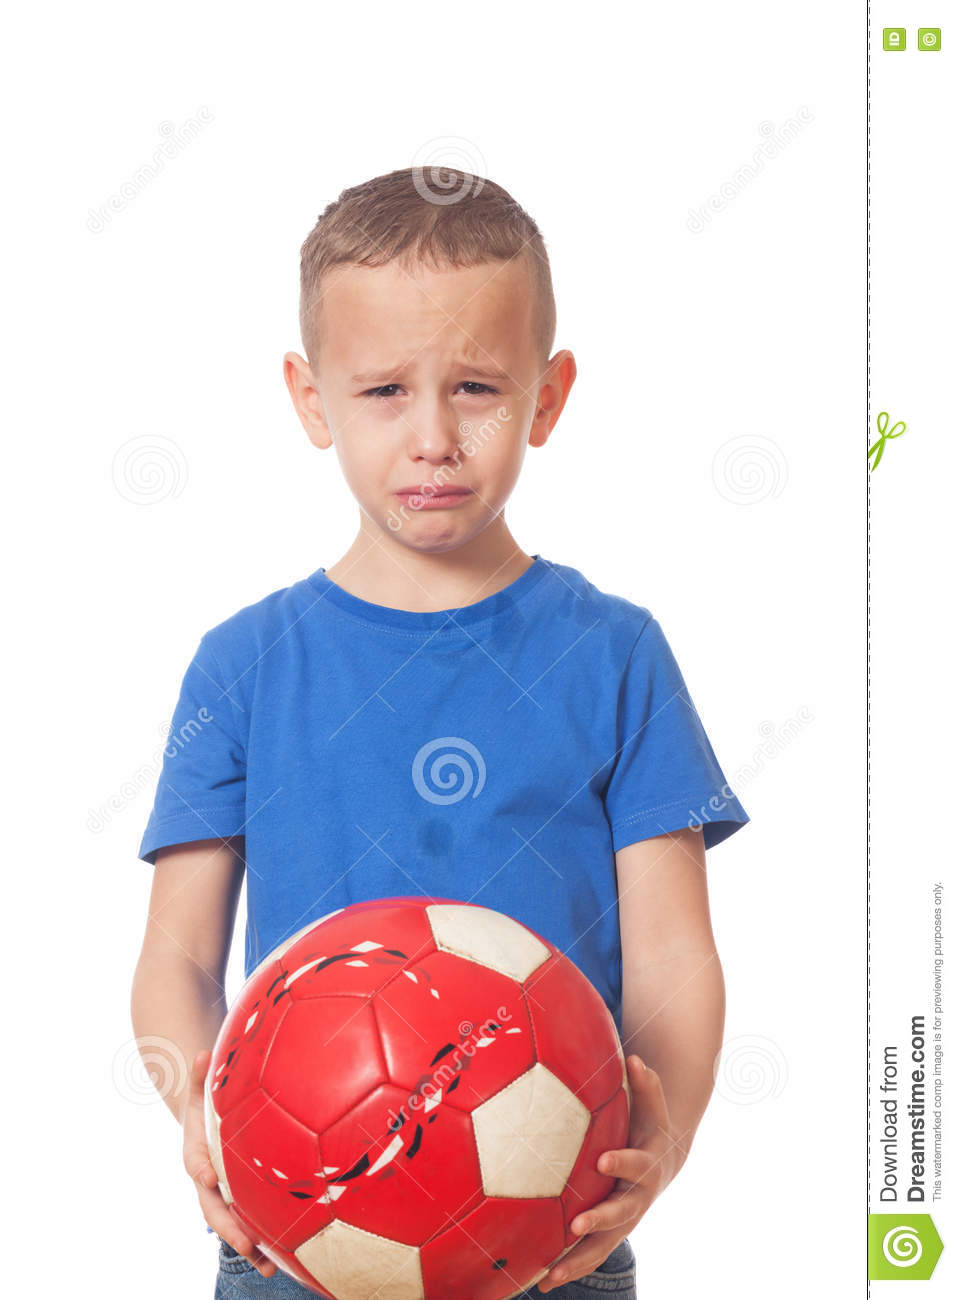 Download Defeated soccer player stock image. Image of failure - 81927301